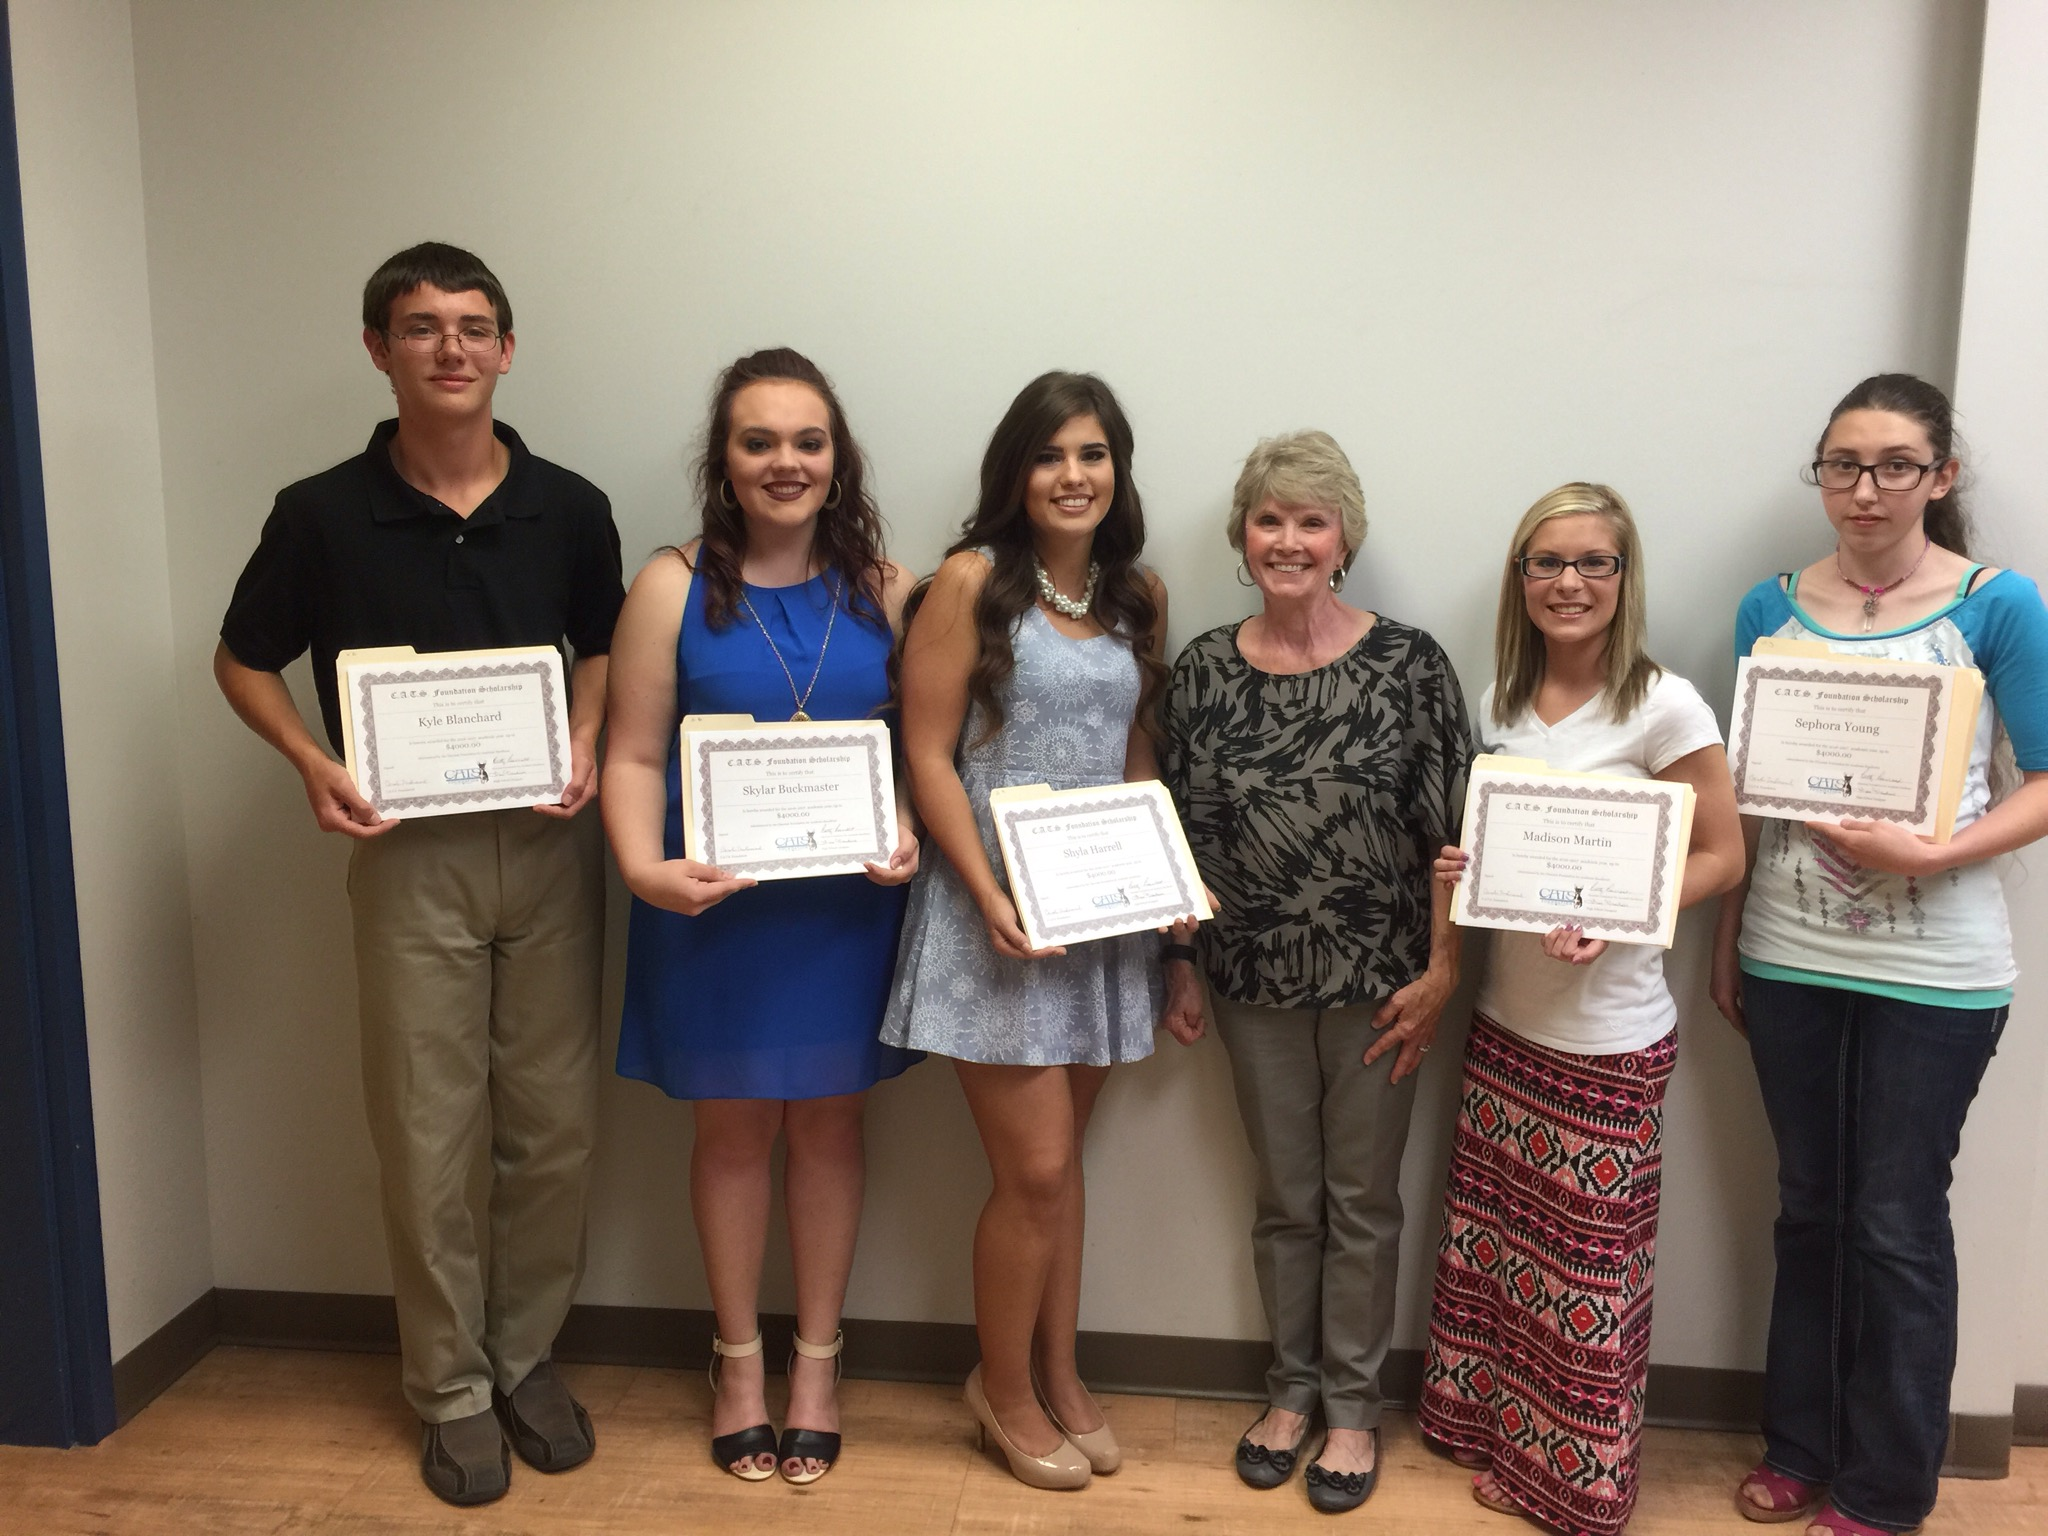 Congratulations to the 2016 C.A.T.S. Foundation scholarship recipients!